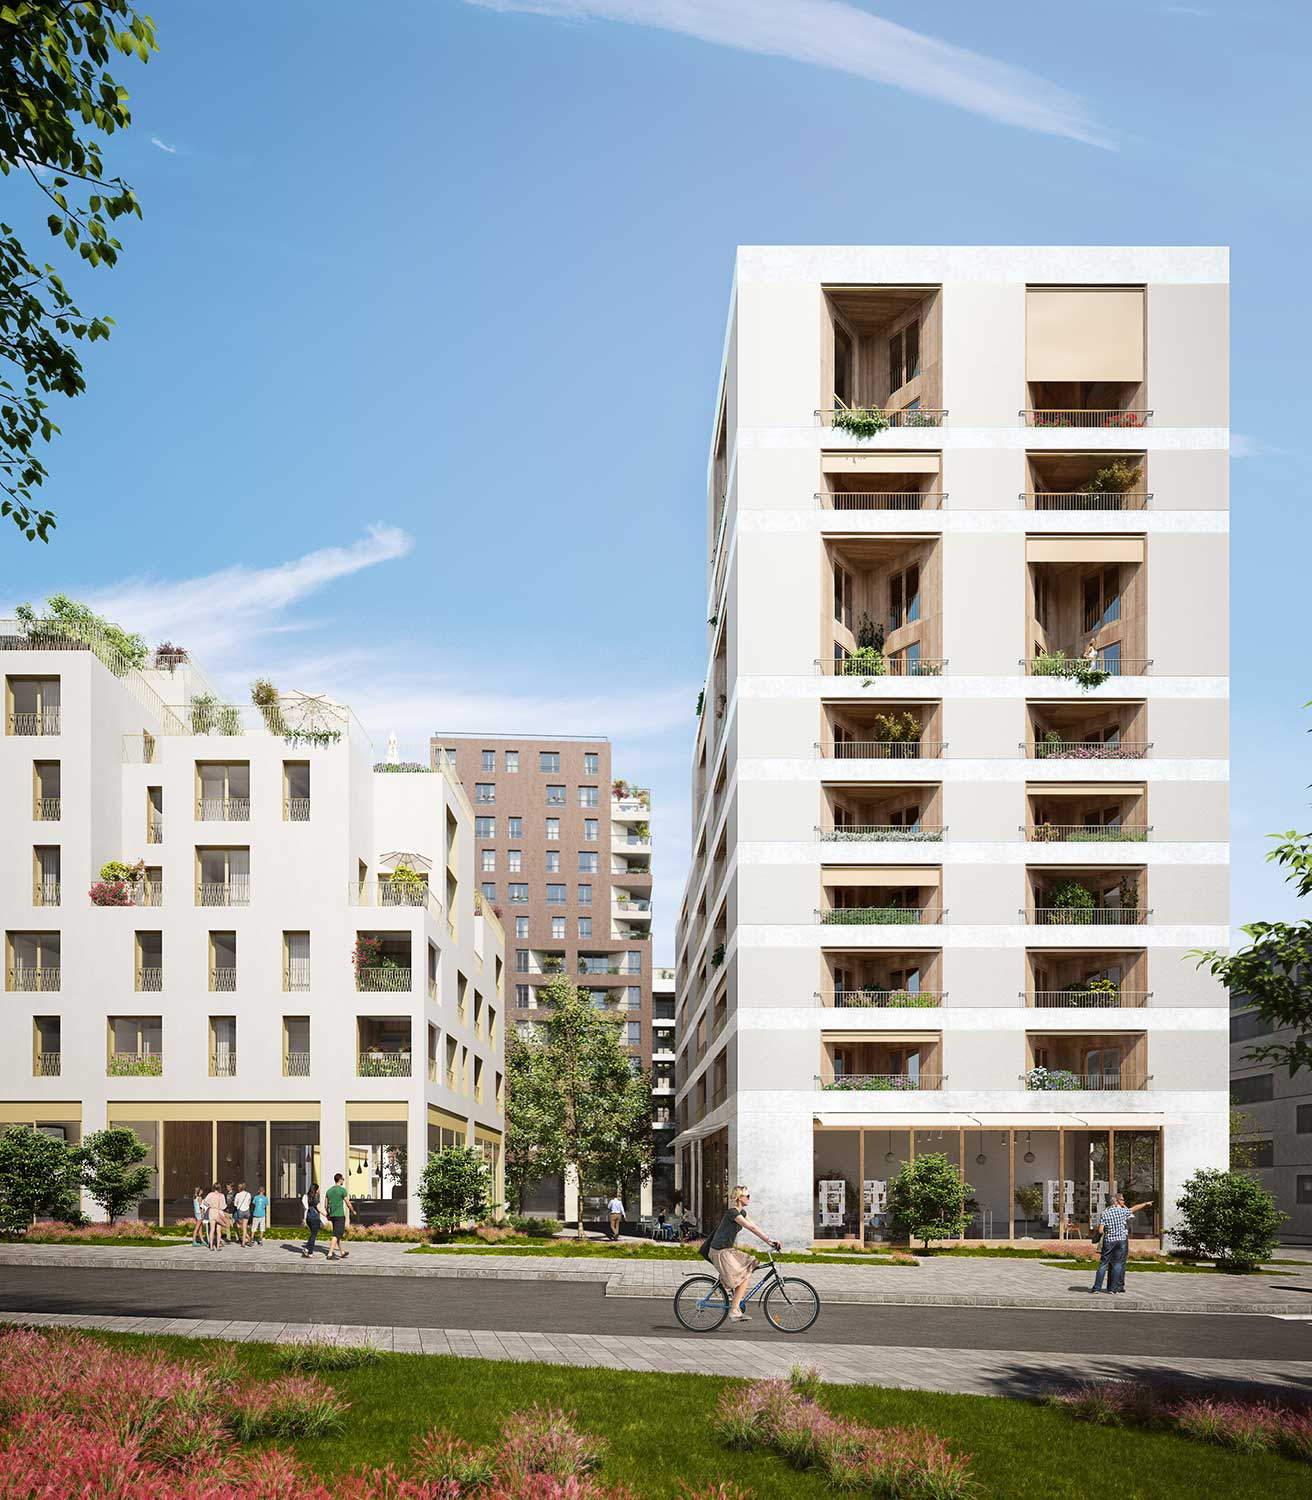 Architectural visualisation building in Massy